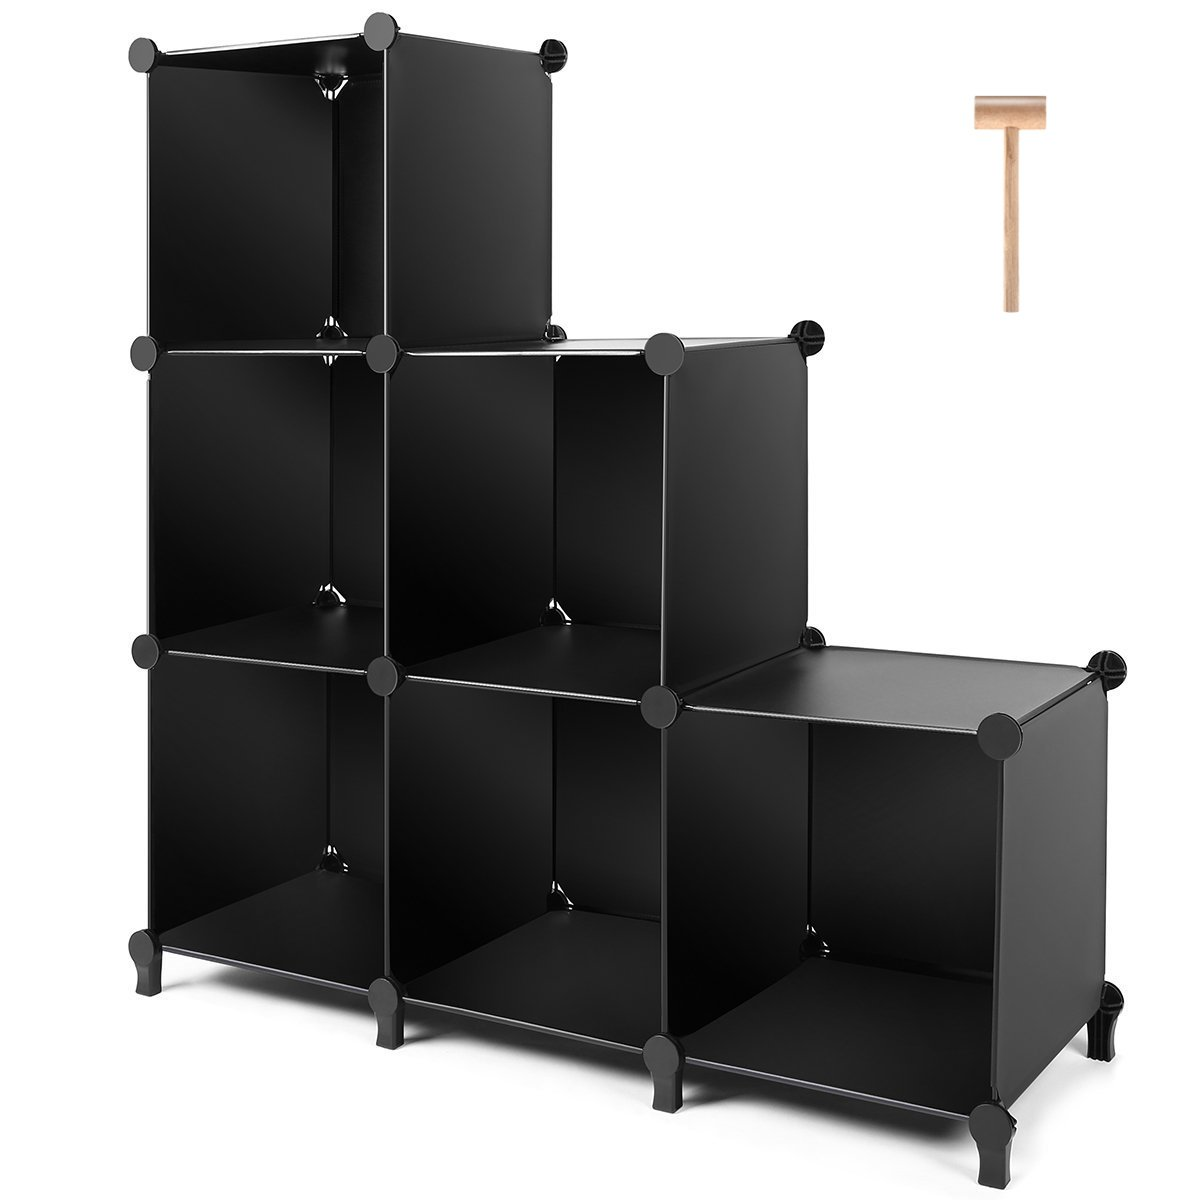 Beau TomCare Cube Storage 6 Cube Closet Organizer Storage Shelves Cubes  Organizer DIY Plastic Closet Cabinet Modular Book Shelf Organizing Storage  Shelving For ...